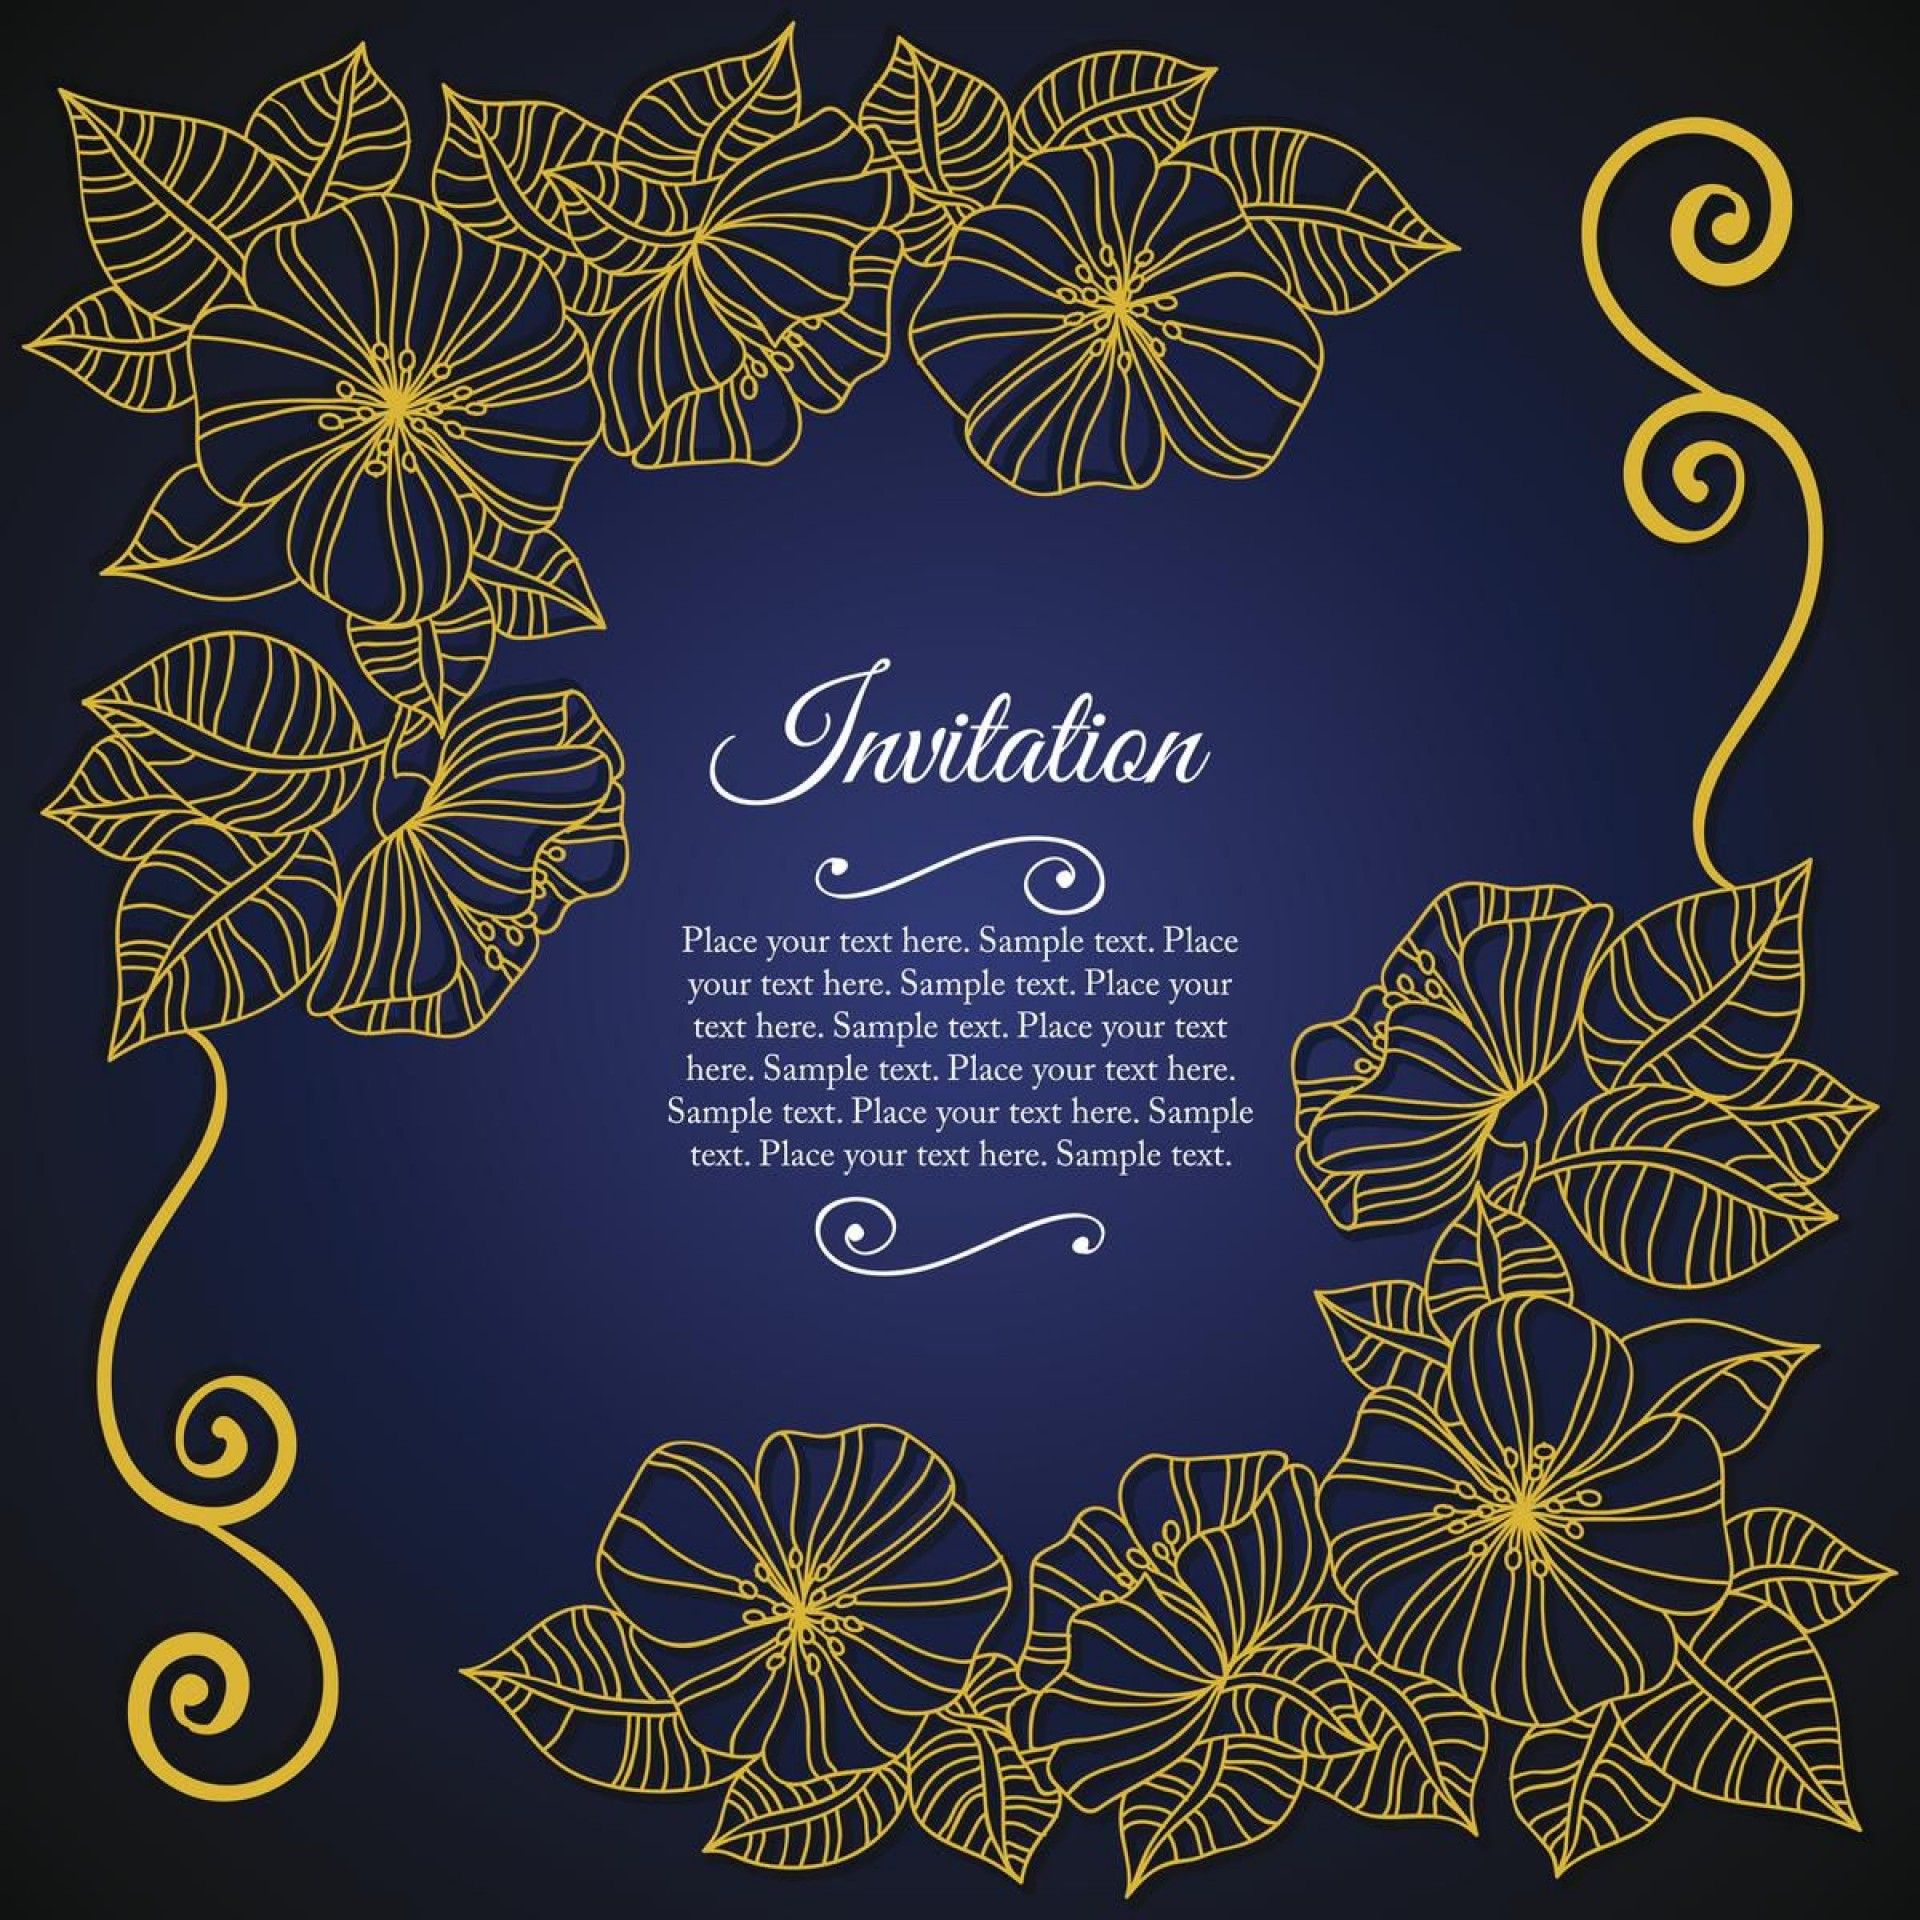 003 Staggering 50th Anniversary Invitation Wording Sample Concept  Samples Wedding Card1920